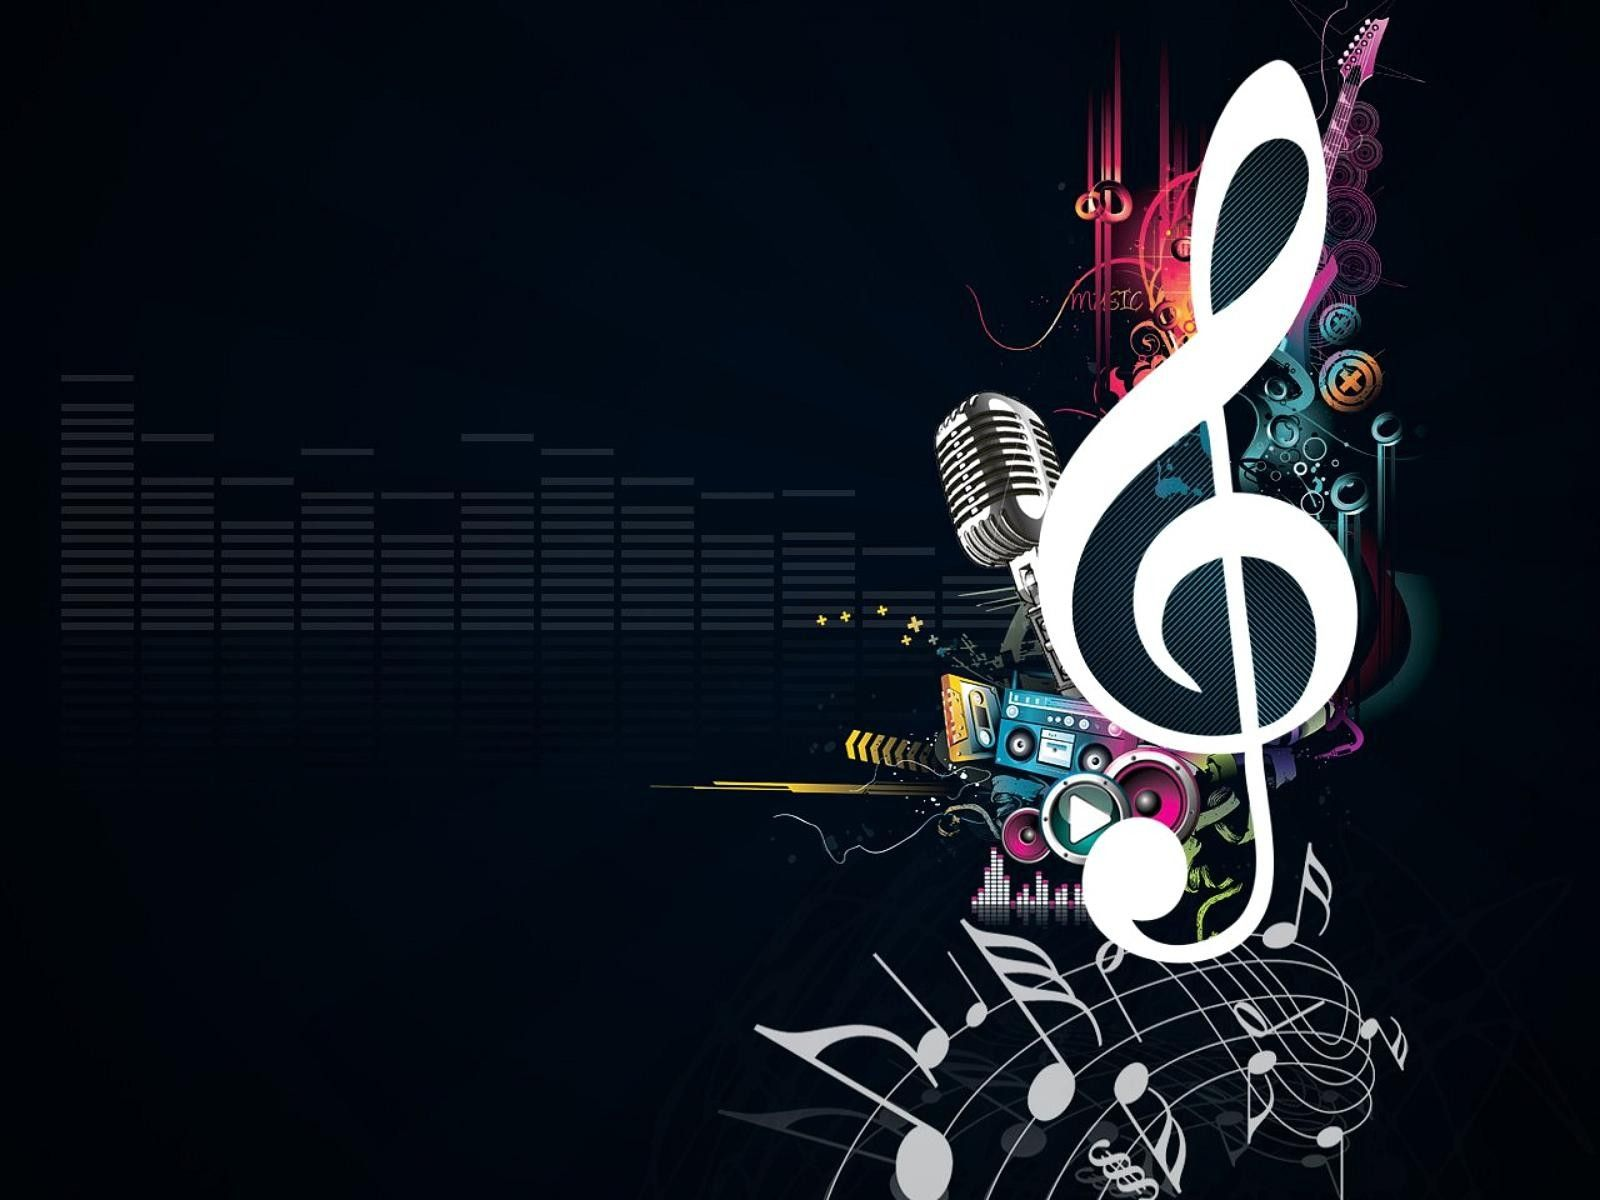 73 music iphone wallpapers for the music lovers music